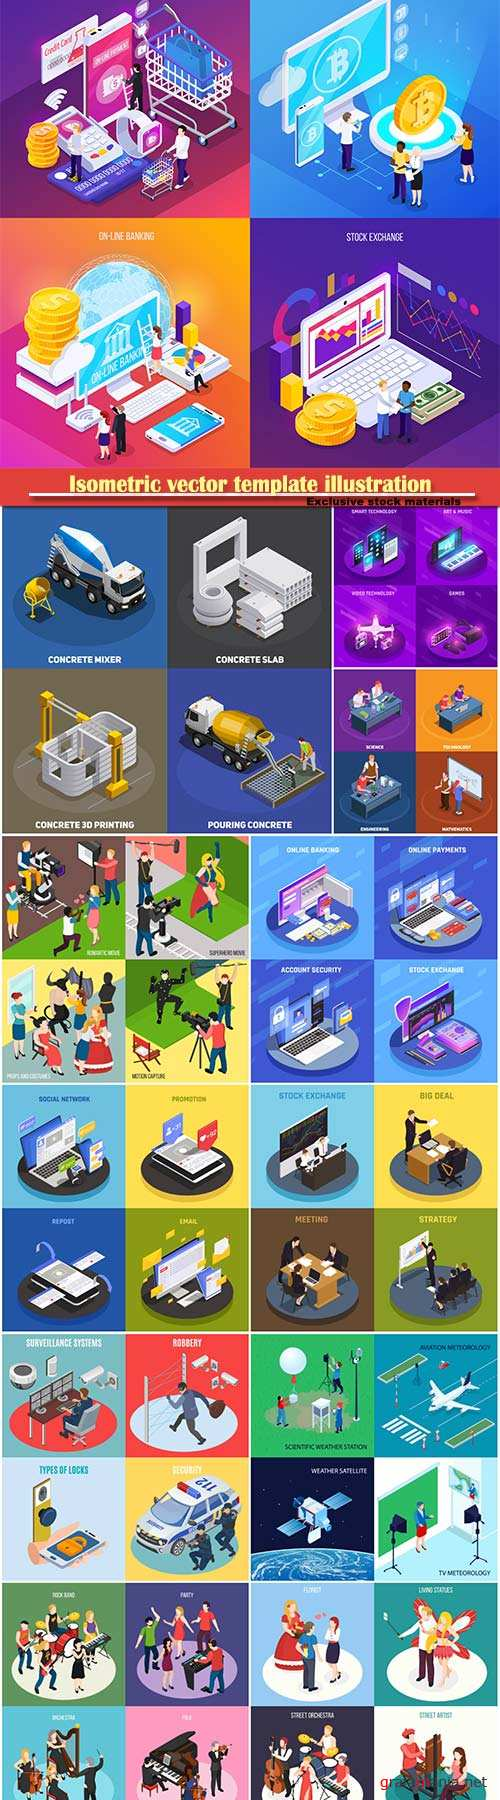 Isometric vector template illustration # 3